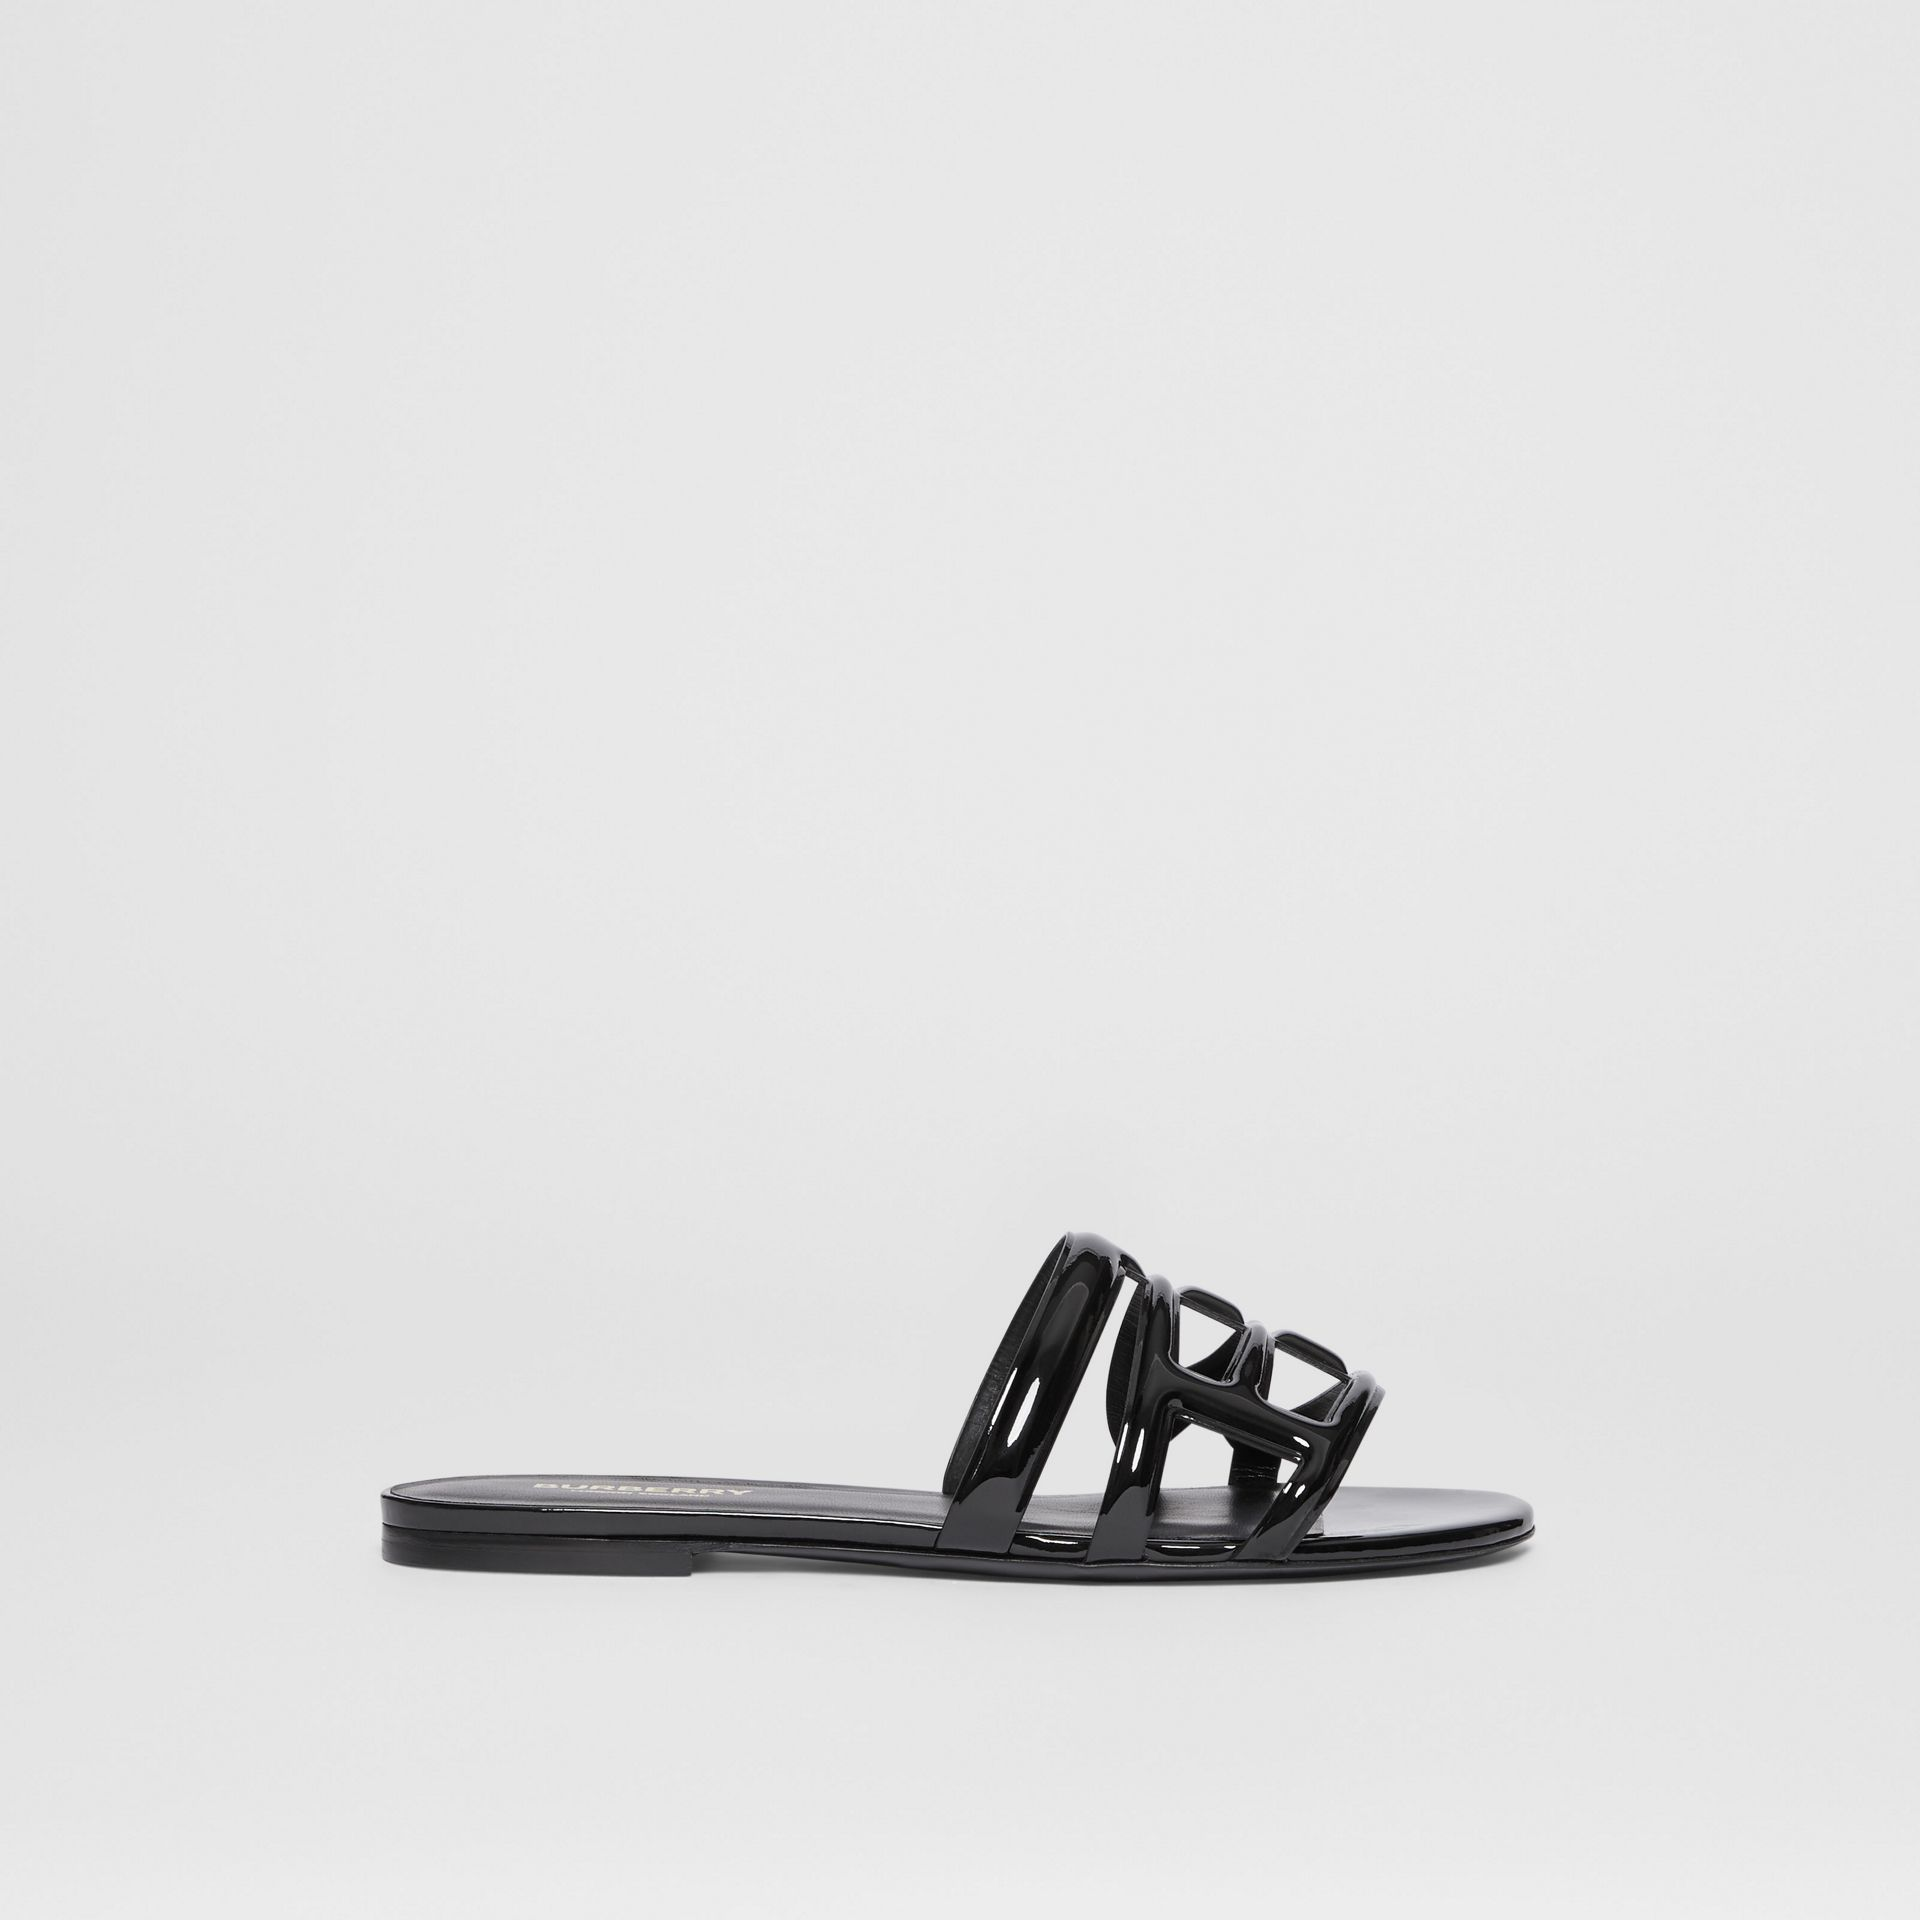 Monogram Motif Patent Leather Sandals in Black - Women | Burberry - gallery image 5